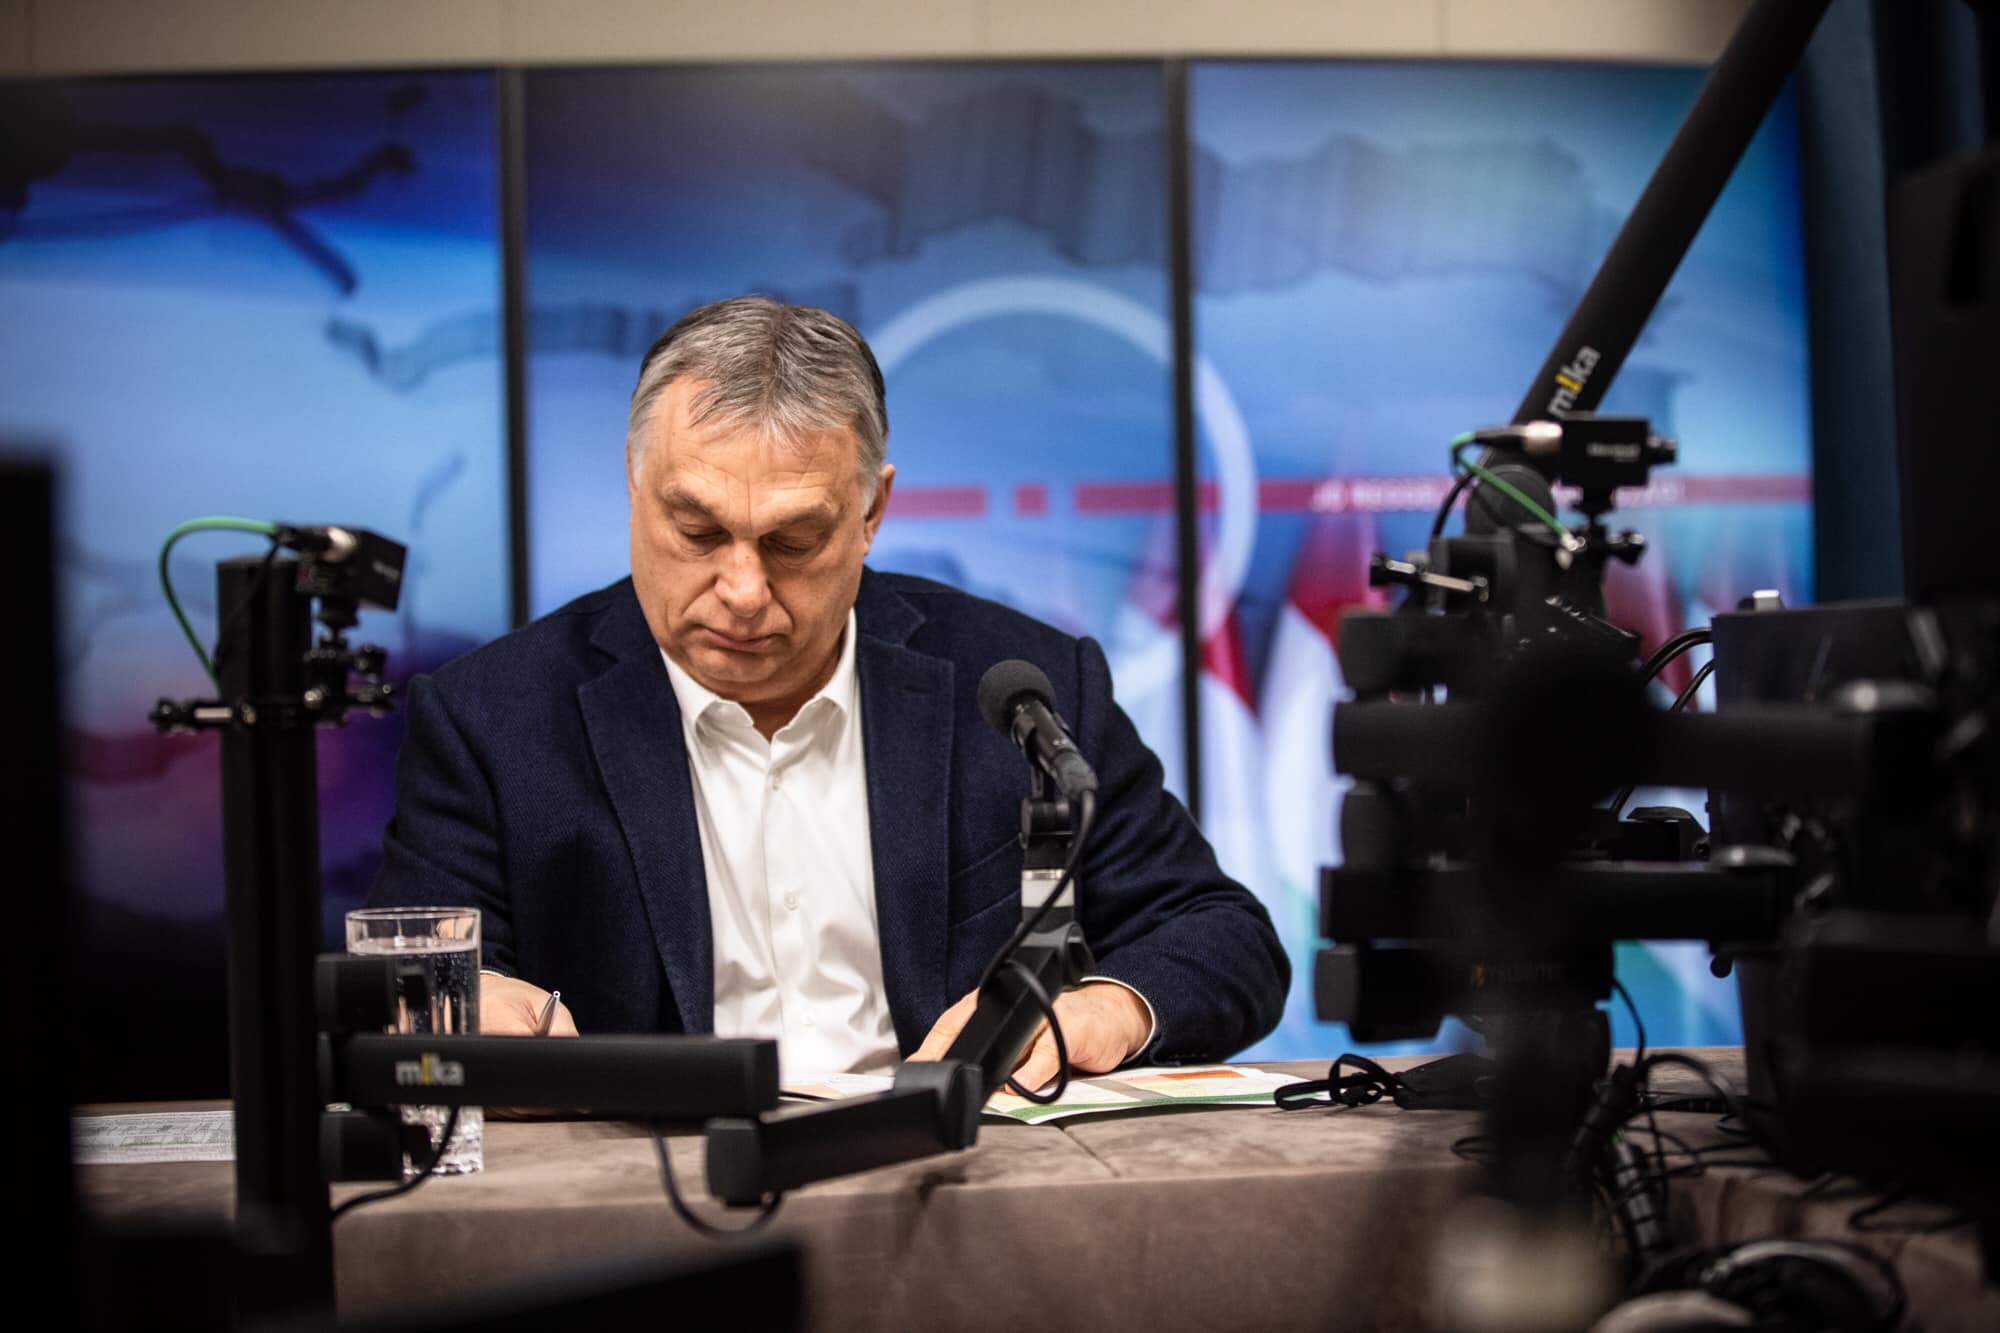 PM Orbán: Hungary Cannot Reopen Economy Yet